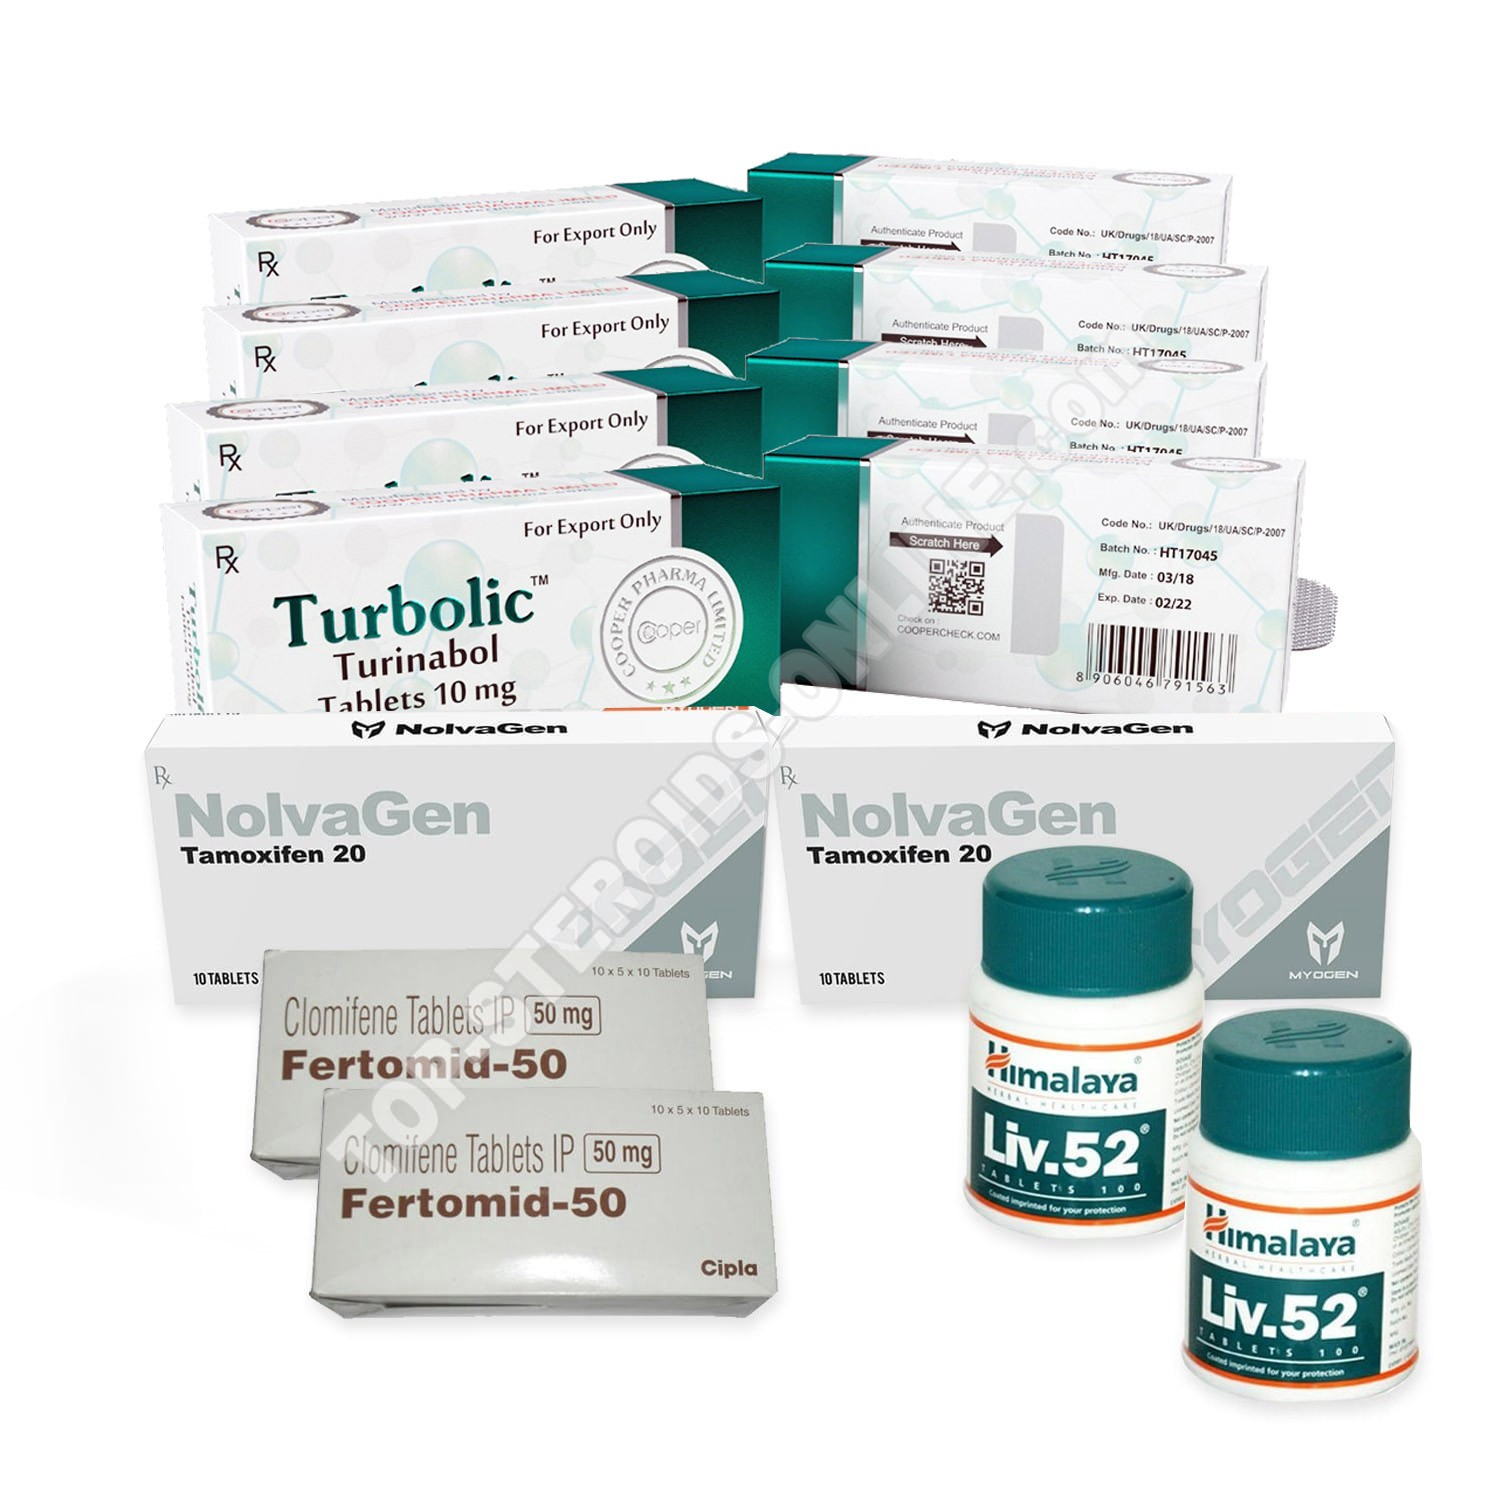 LEAN MUSCLE LEVEL III PACK (ORAL) COOPER - TURBOLIC + PROTECTION + PCT (8 WEEKS)